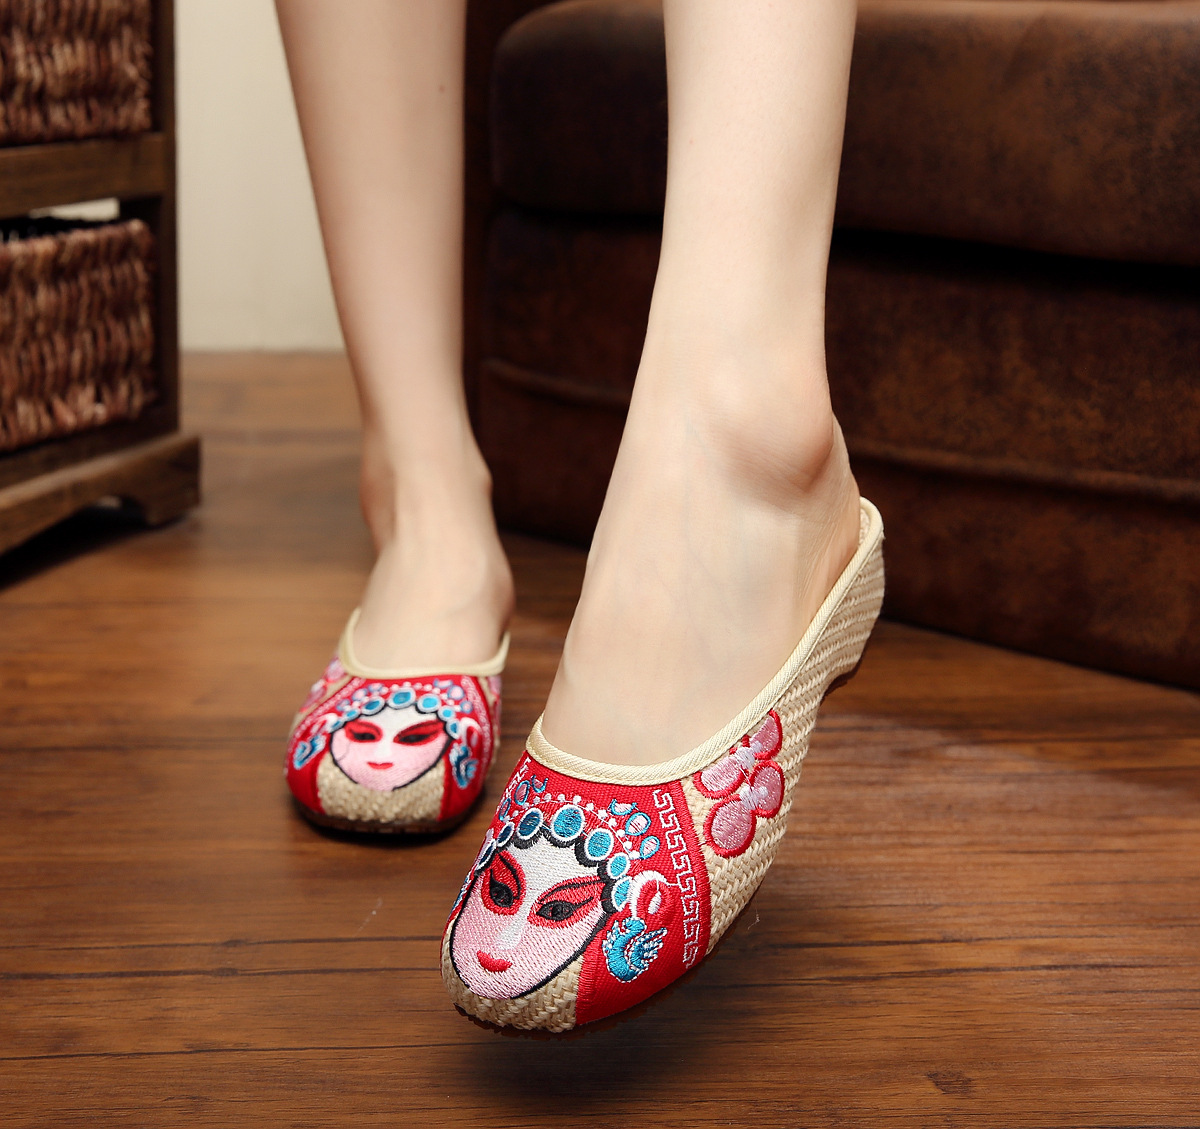 Sandals shoes facebook - Facebook Embroidery Slippers Summer Fashion Women Sandals Chinese Old Peking Casual Slippers Facebook Sandals Shoes Smyxhx